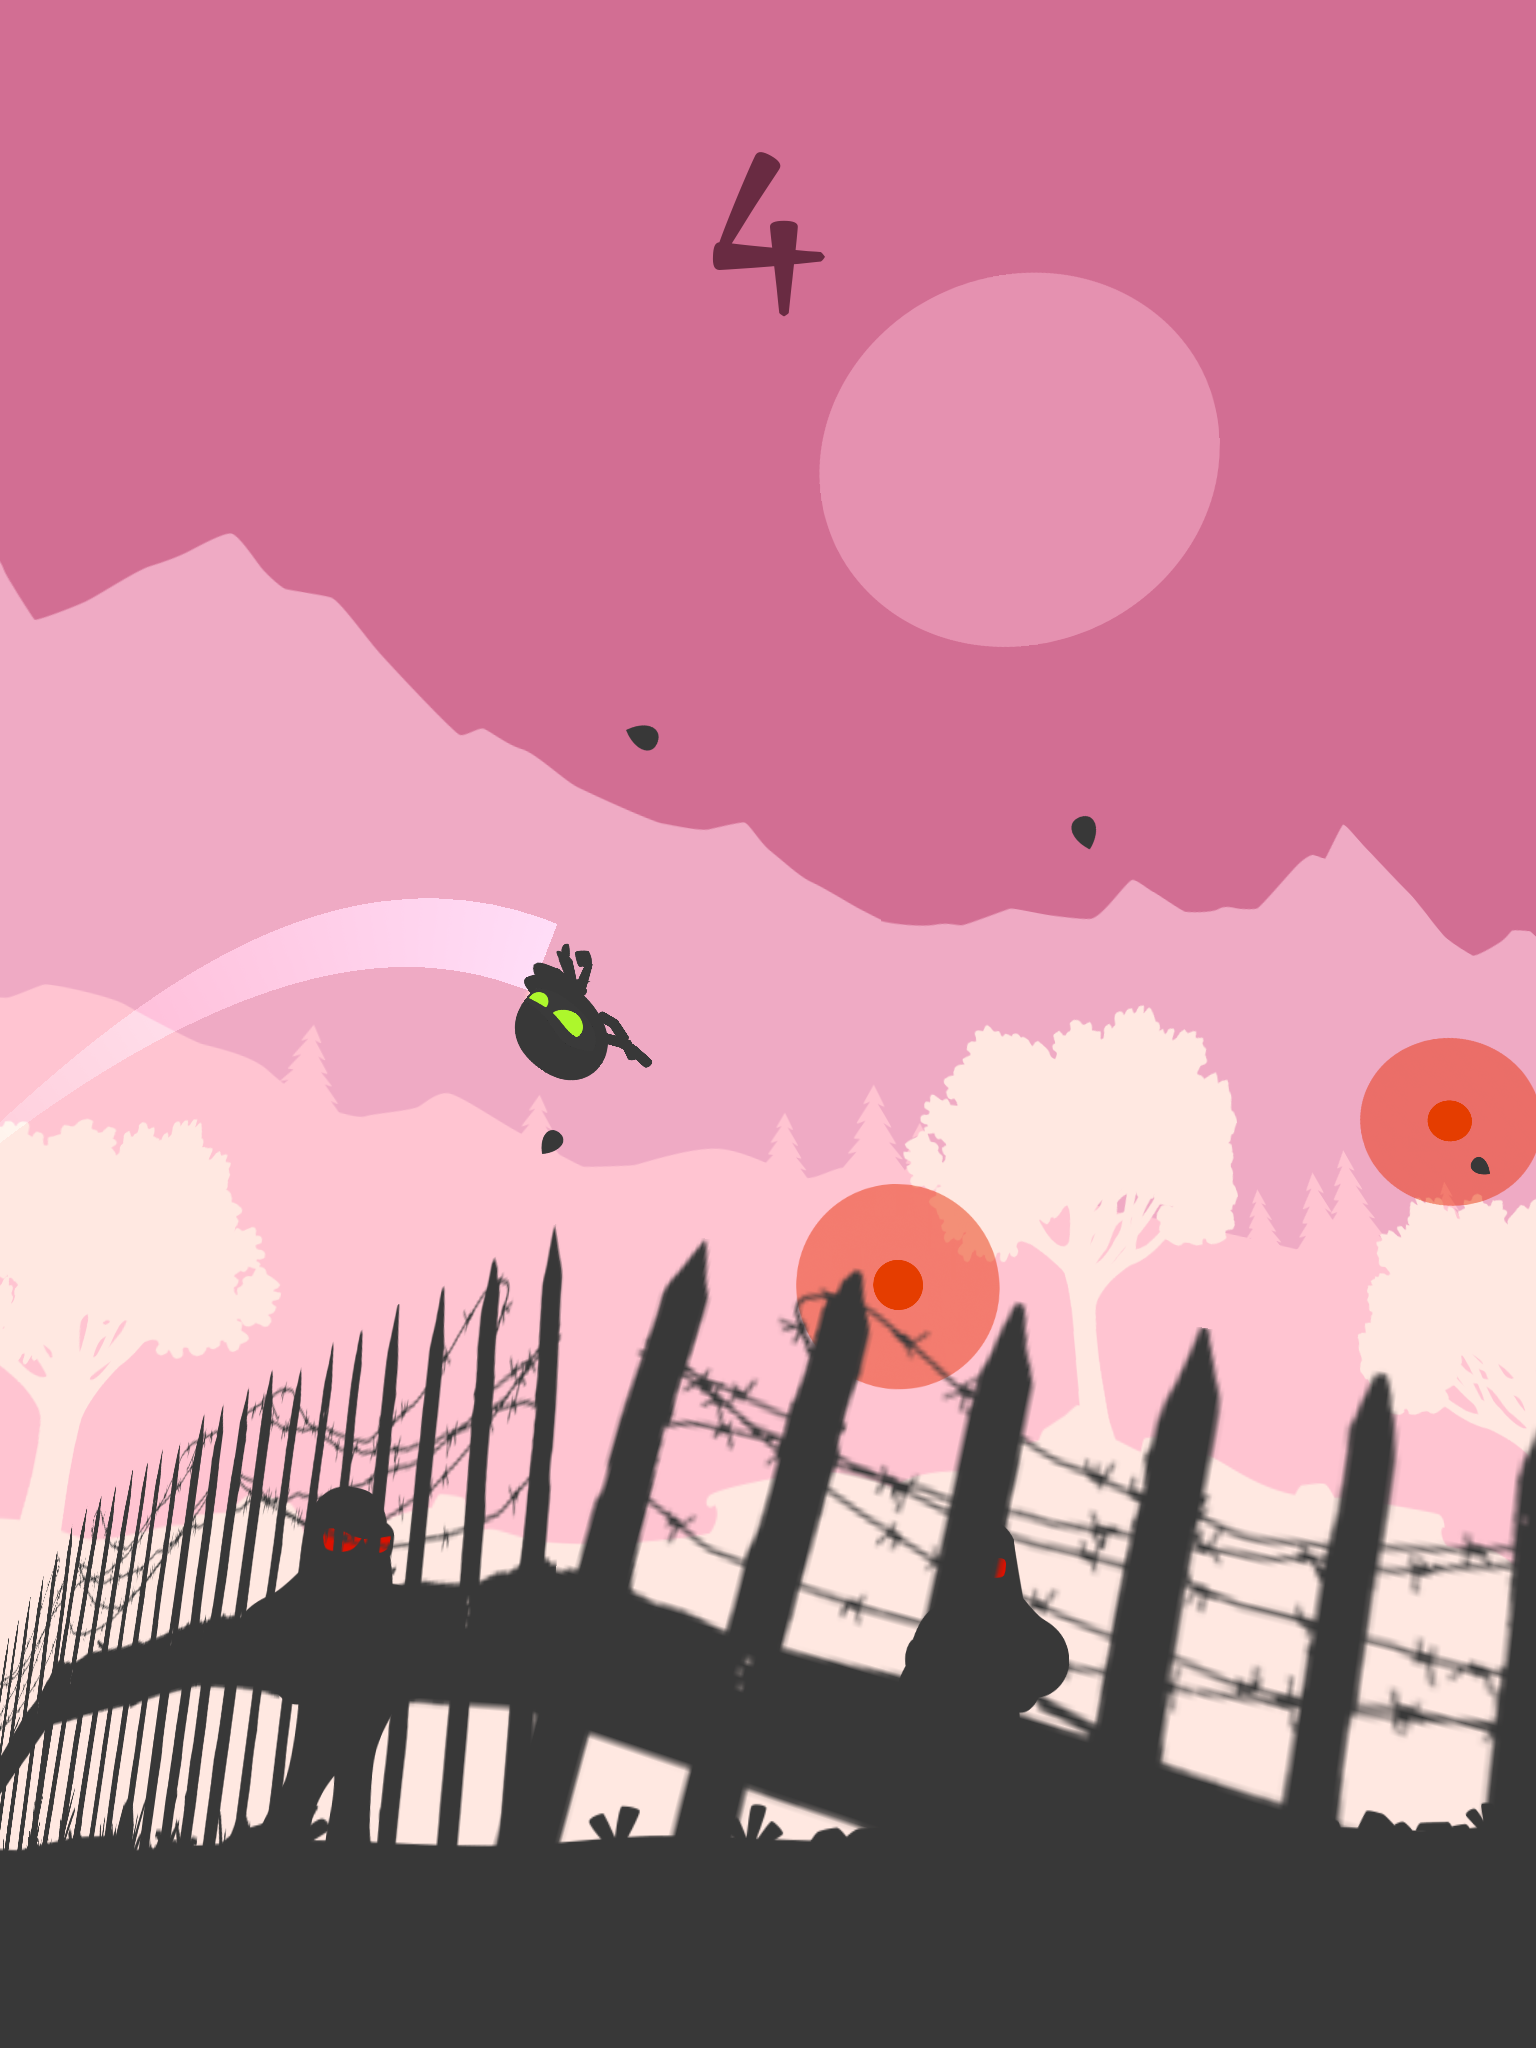 Breakout Ninja review - A one-touch runner with a style of its own